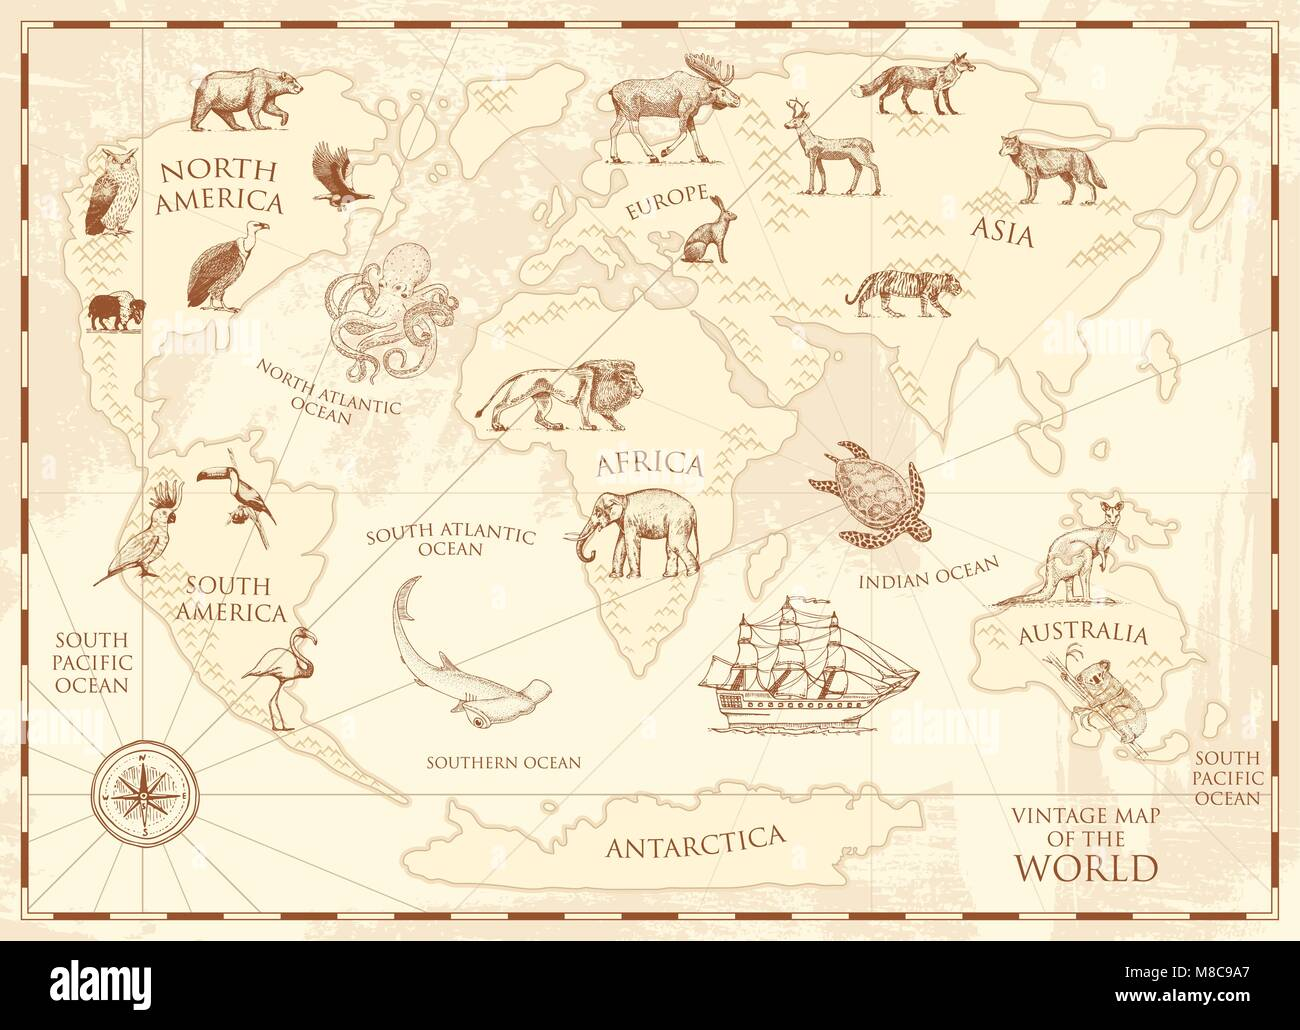 Vintage world map stock vector images alamy vintage world map with wild animals and mountains sea creatures in the ocean old gumiabroncs Gallery